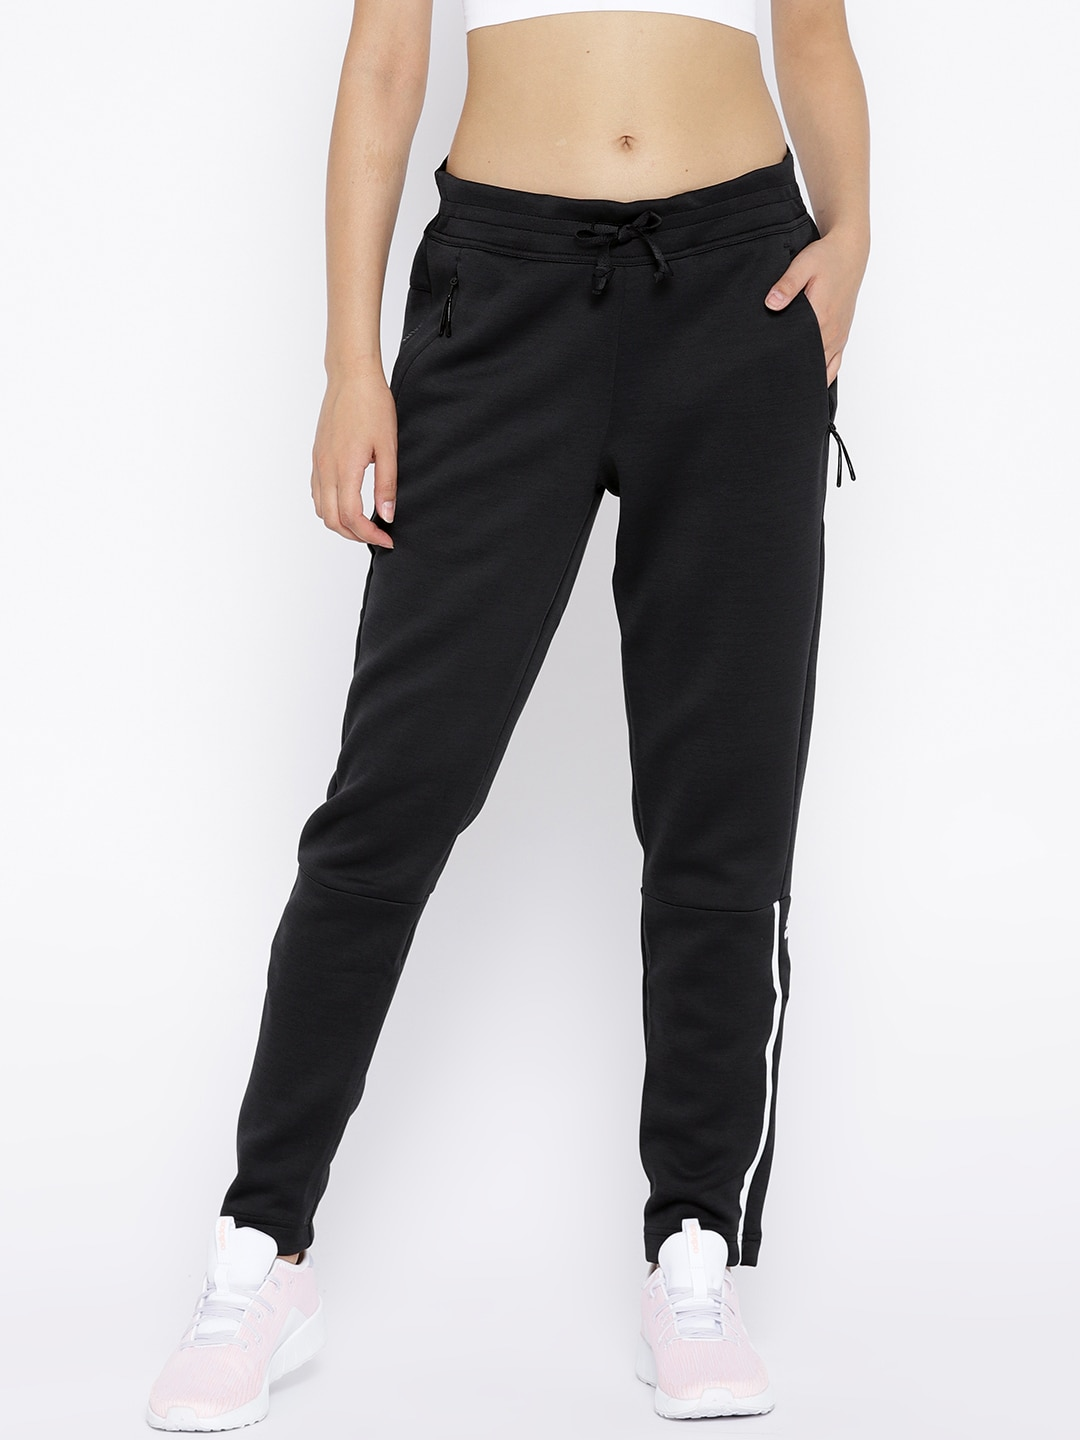 Adidas Clima 365 Tights Track Pants Pants - Buy Adidas Clima 365 Tights  Track Pants Pants online in India e2d751d5be0f